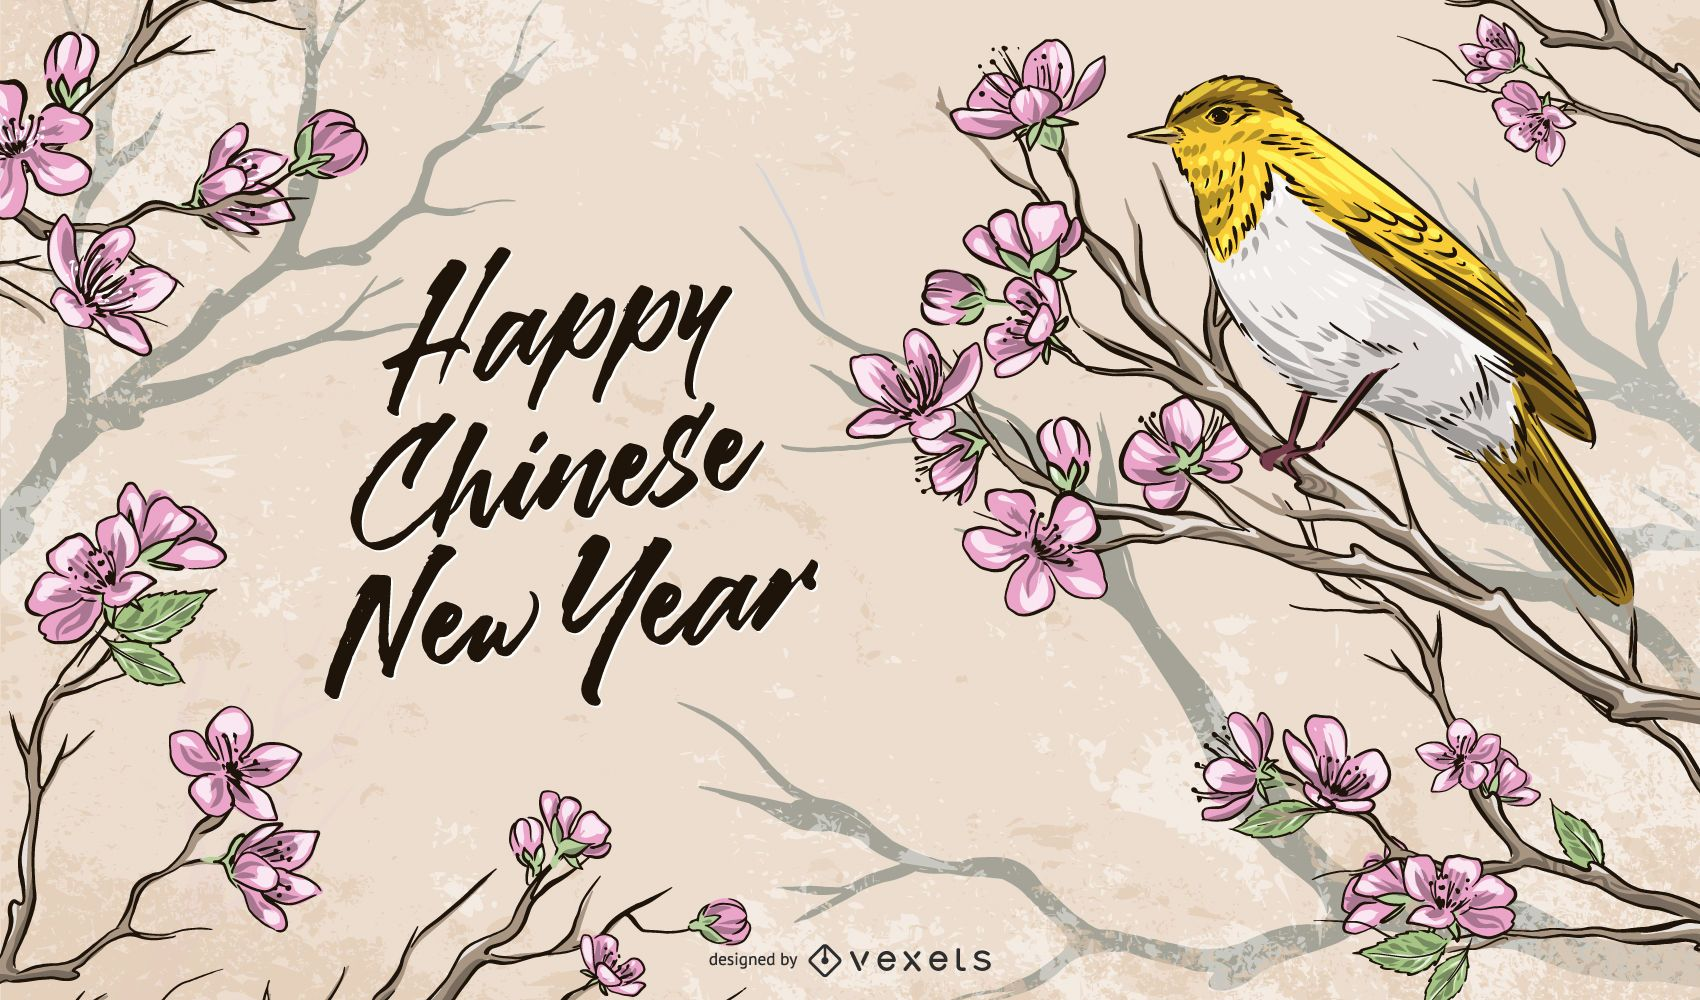 Lunar Chinese New Year Illustration